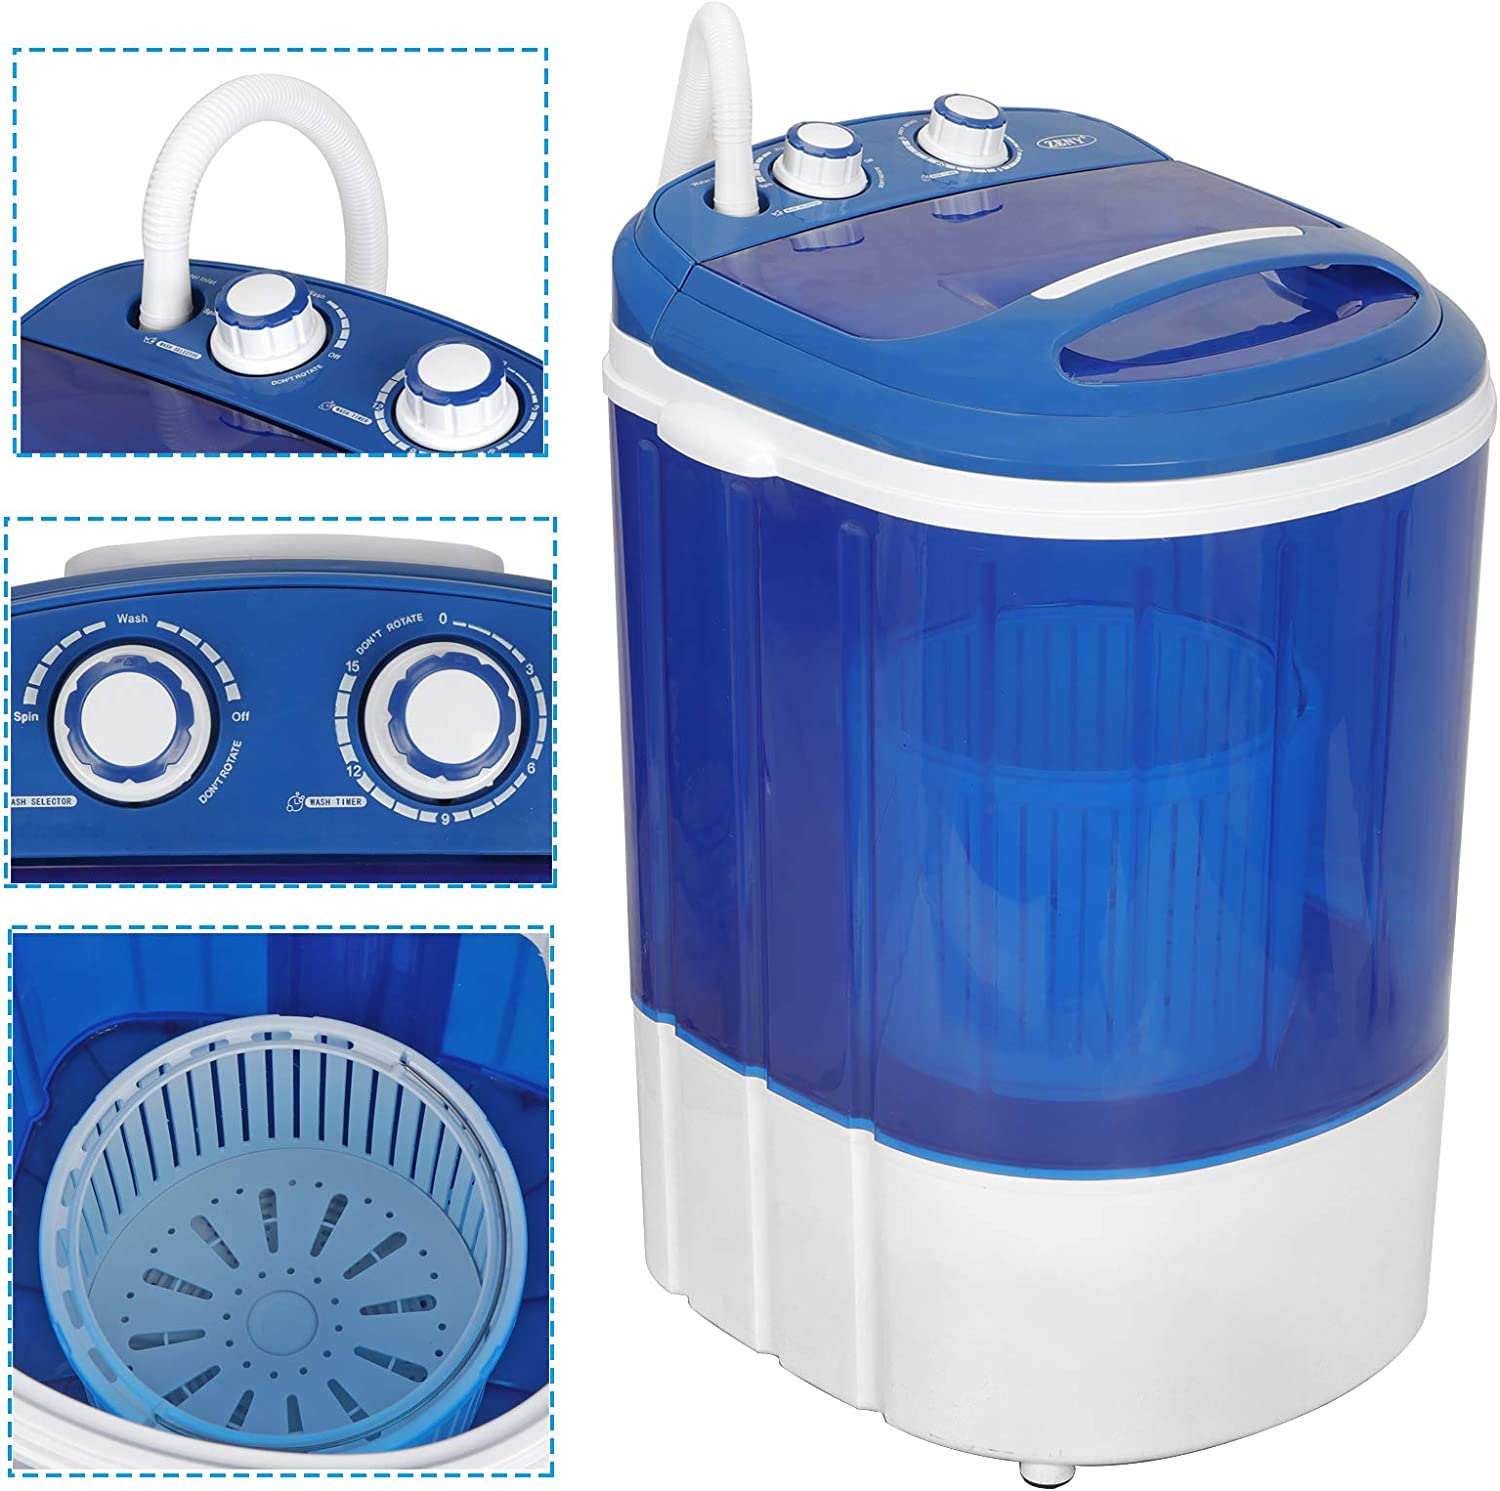 ZENY Portable Mini Laundry Washing Machine Small Semi-Automatic Compact Washer for Apartment,RV,Traveling,Single Translucent Tub